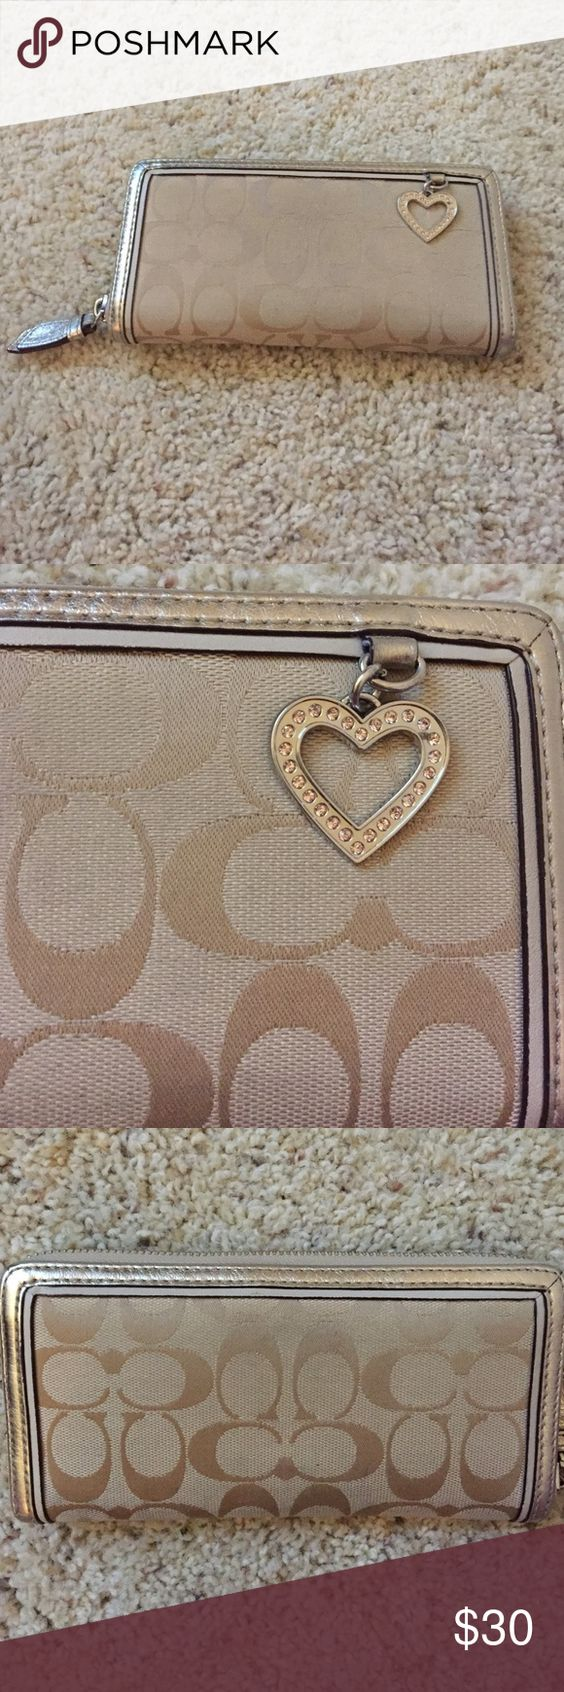 Coach wallet Super cute Coach wallet with heart charm! In good condition. Could use a cleaning but it does not have any tears or stains that wouldn't come out. Coach Bags Wallets